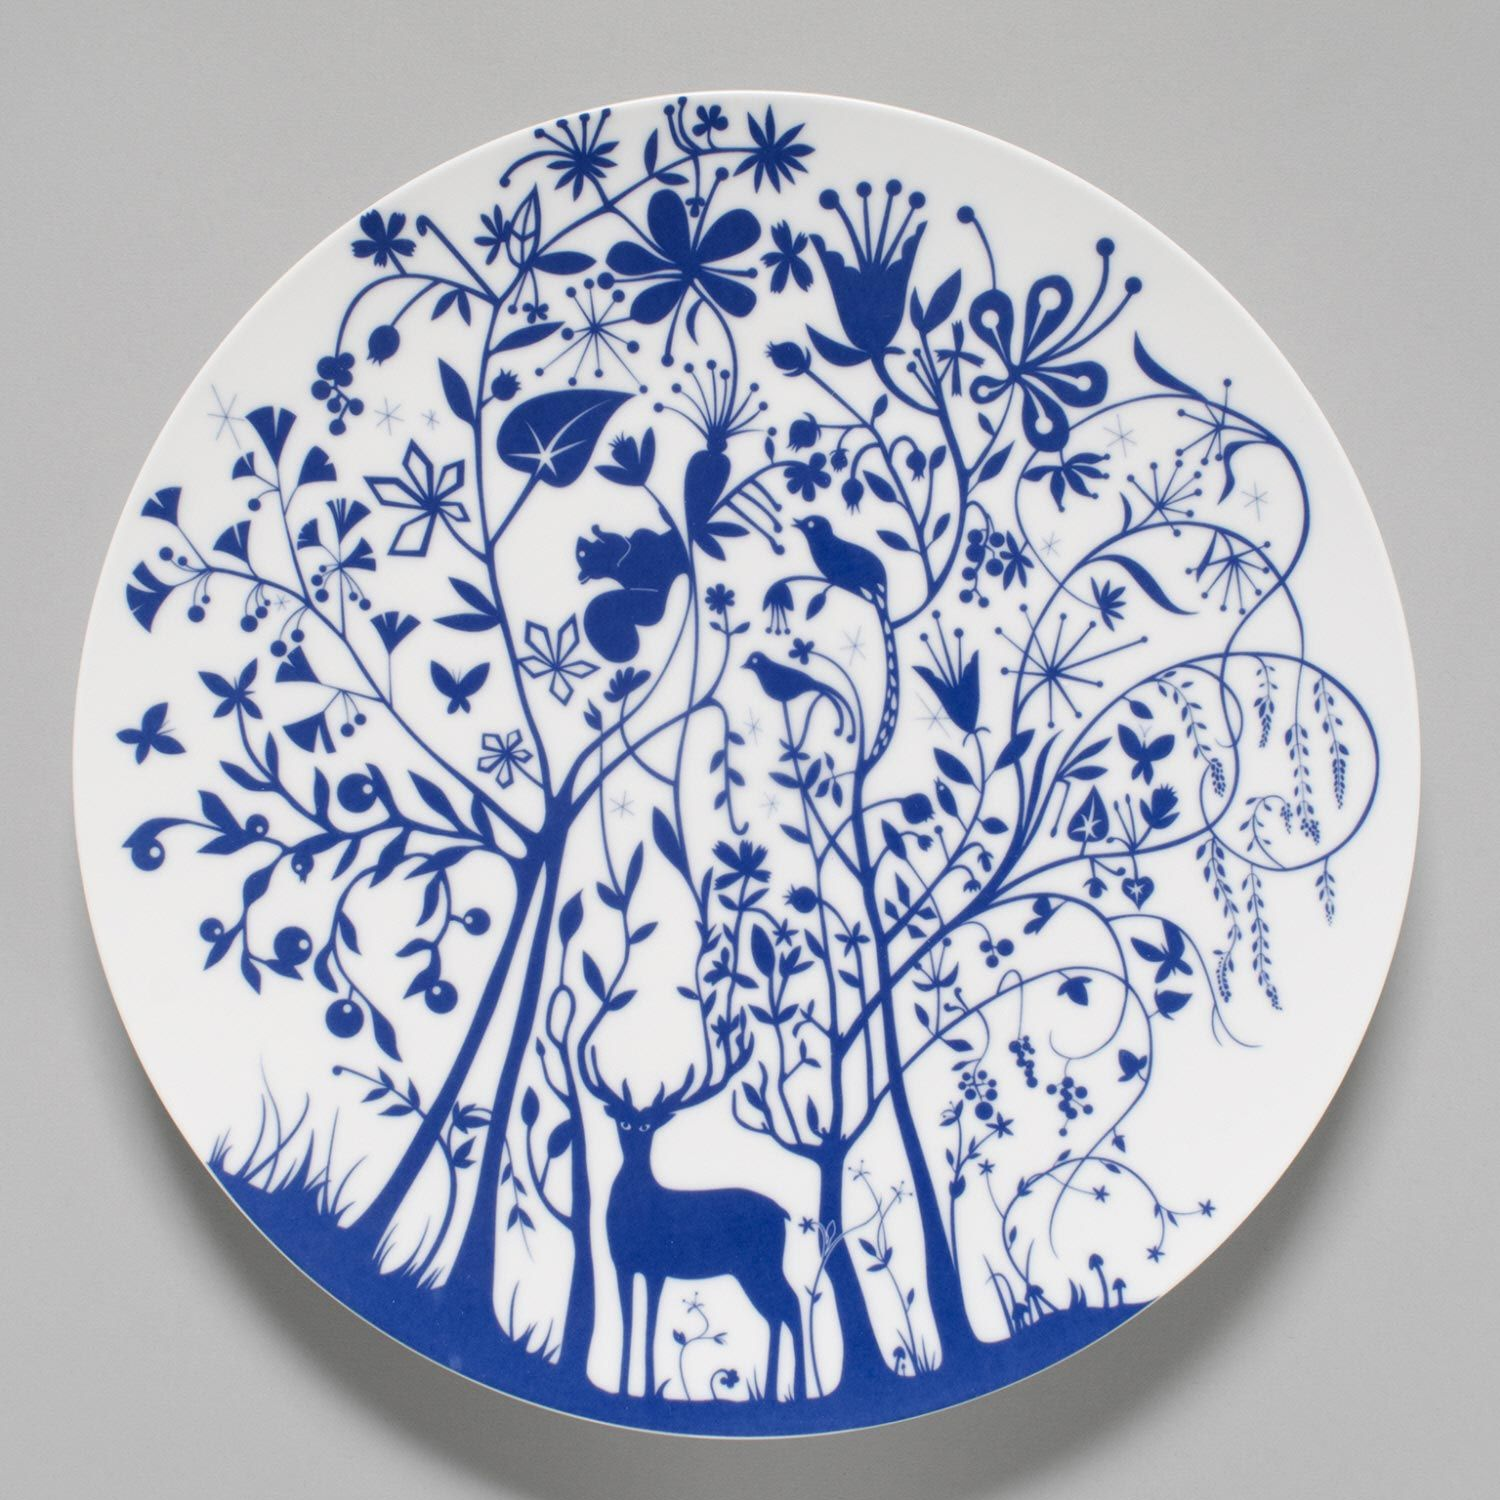 """""""Deer in Forest"""" Plate   Designed by Tord Boontje, Dutch, born 1968."""